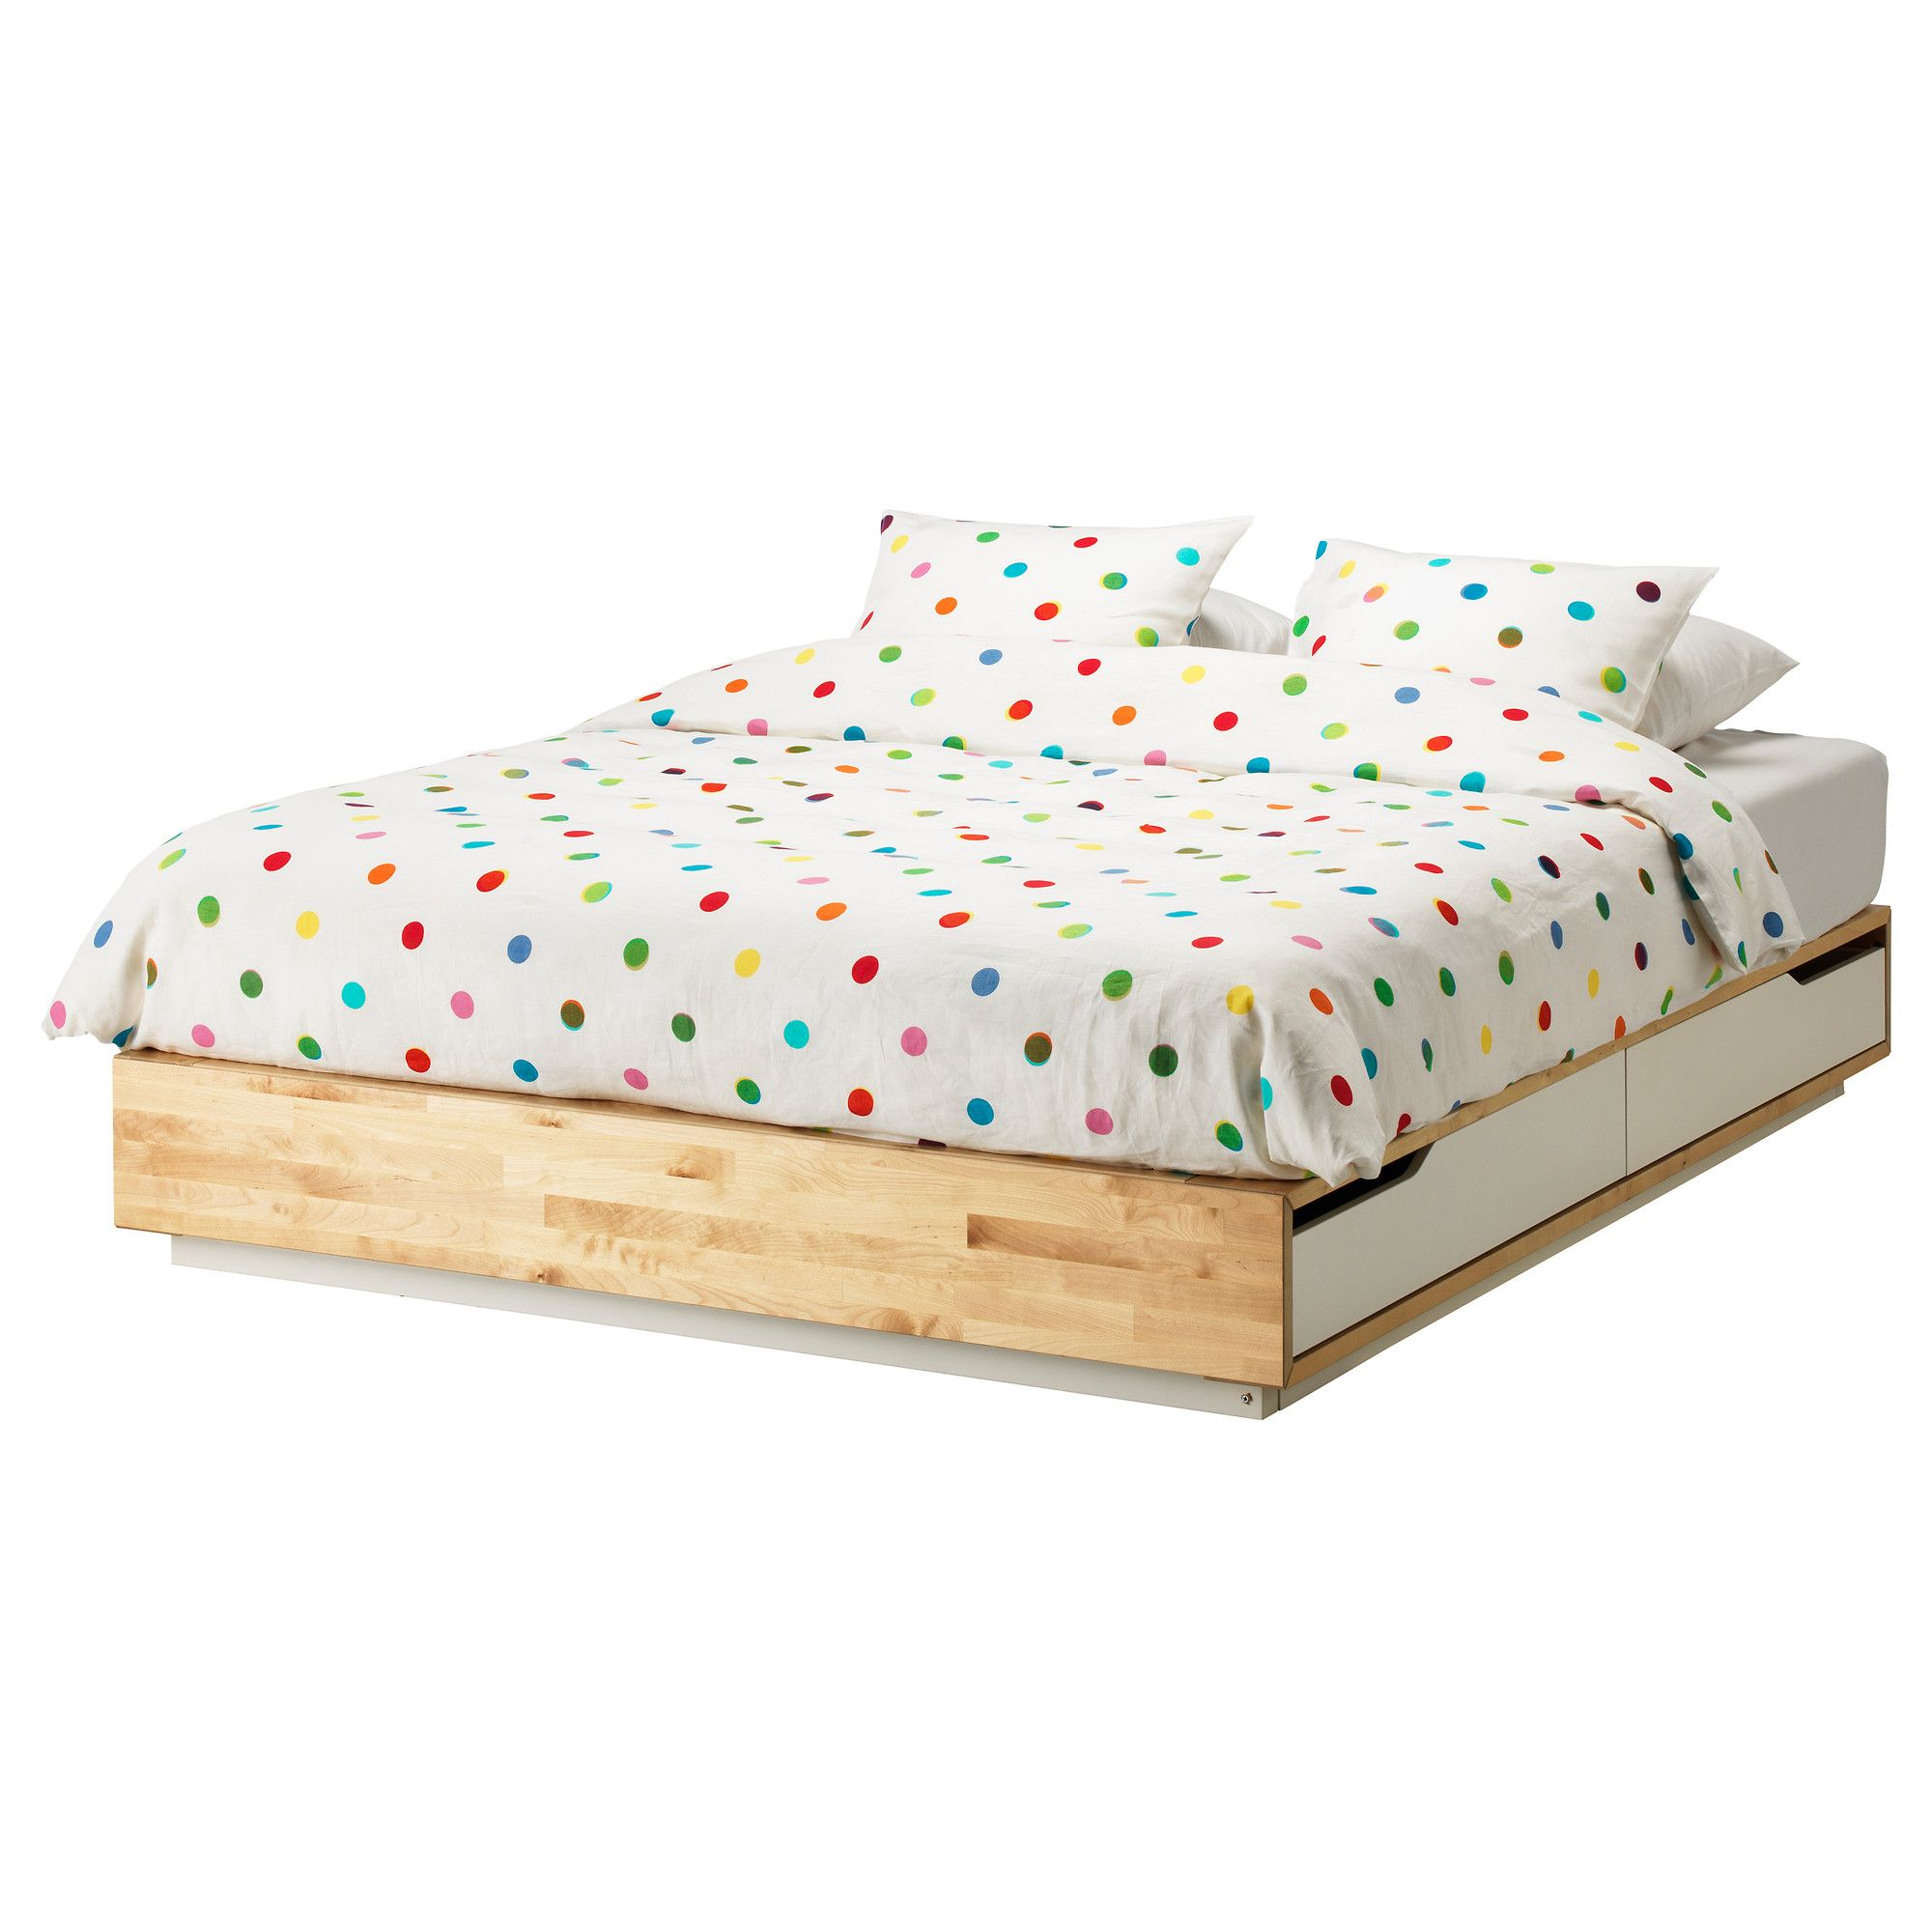 Delightful Guest House: MANDAL Bed Frame With Storage   Queen   IKEA $399   Really  Liking This For A Clean Modern Look, Coordinating Headboard Is Long Enough  To Put On ...